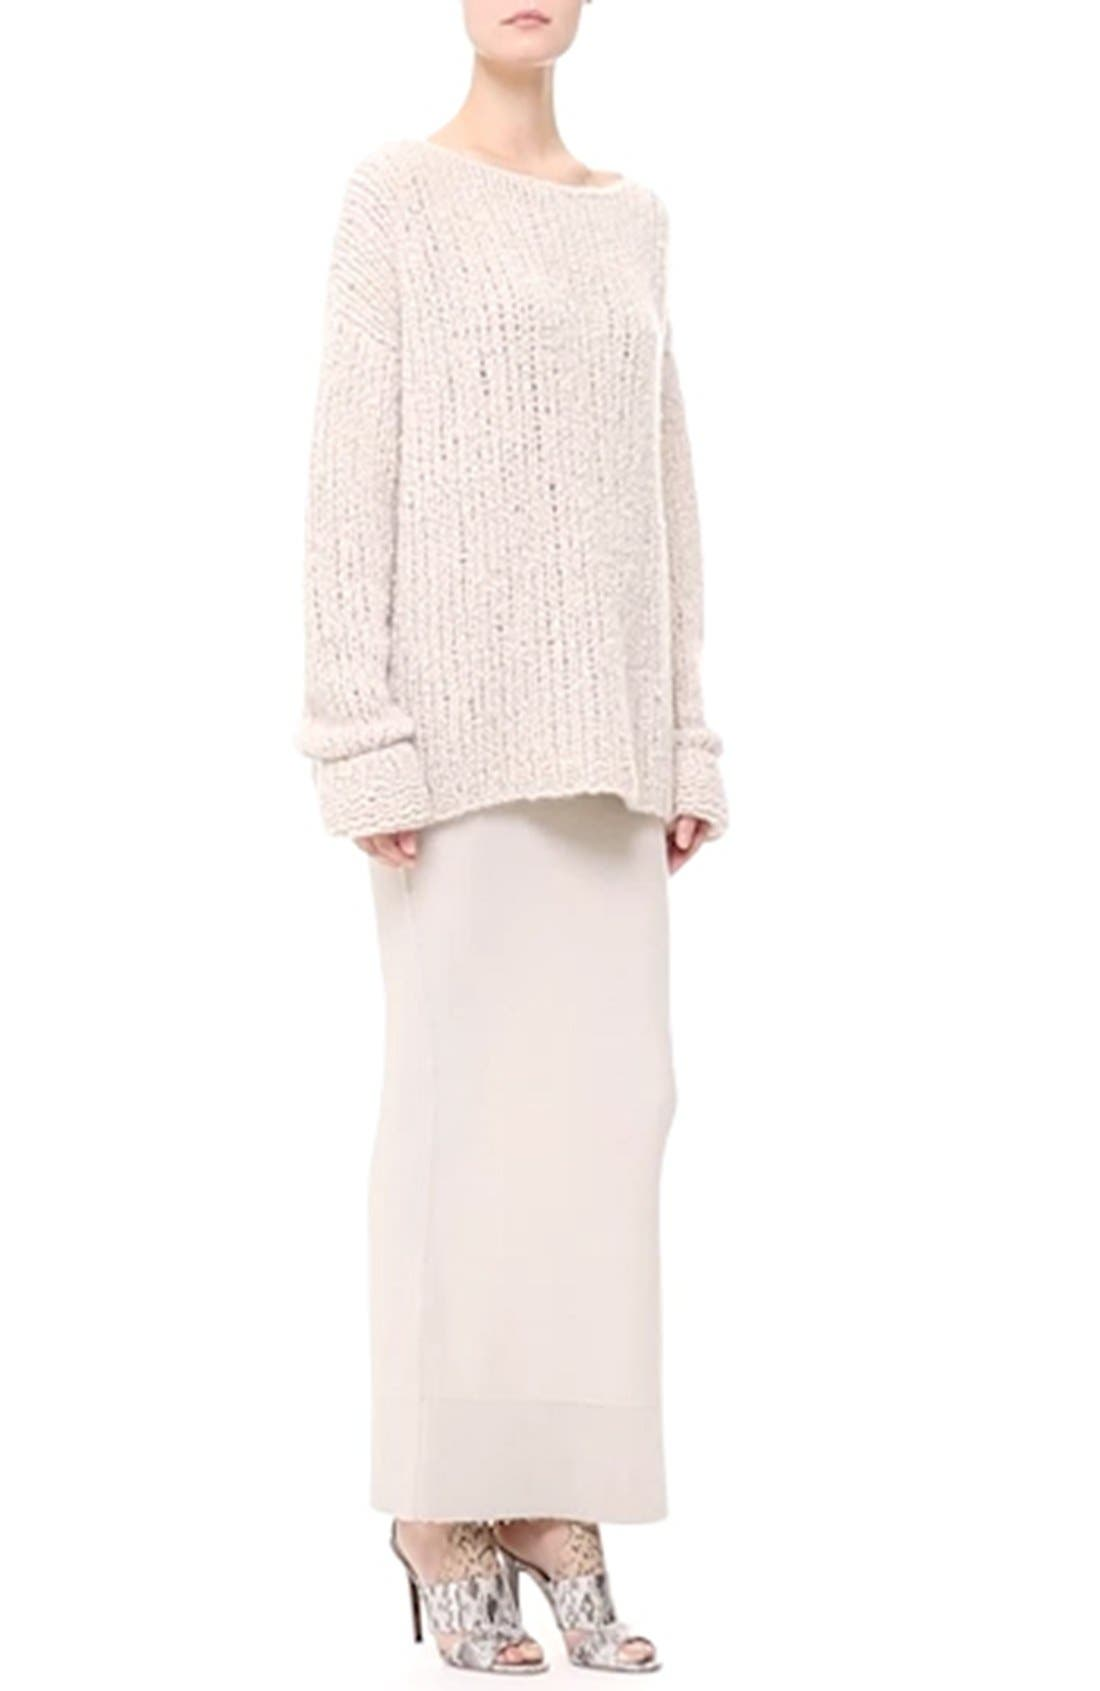 Donna KaranCollection Hand Knit Cashmere Sweater,                             Alternate thumbnail 4, color,                             282